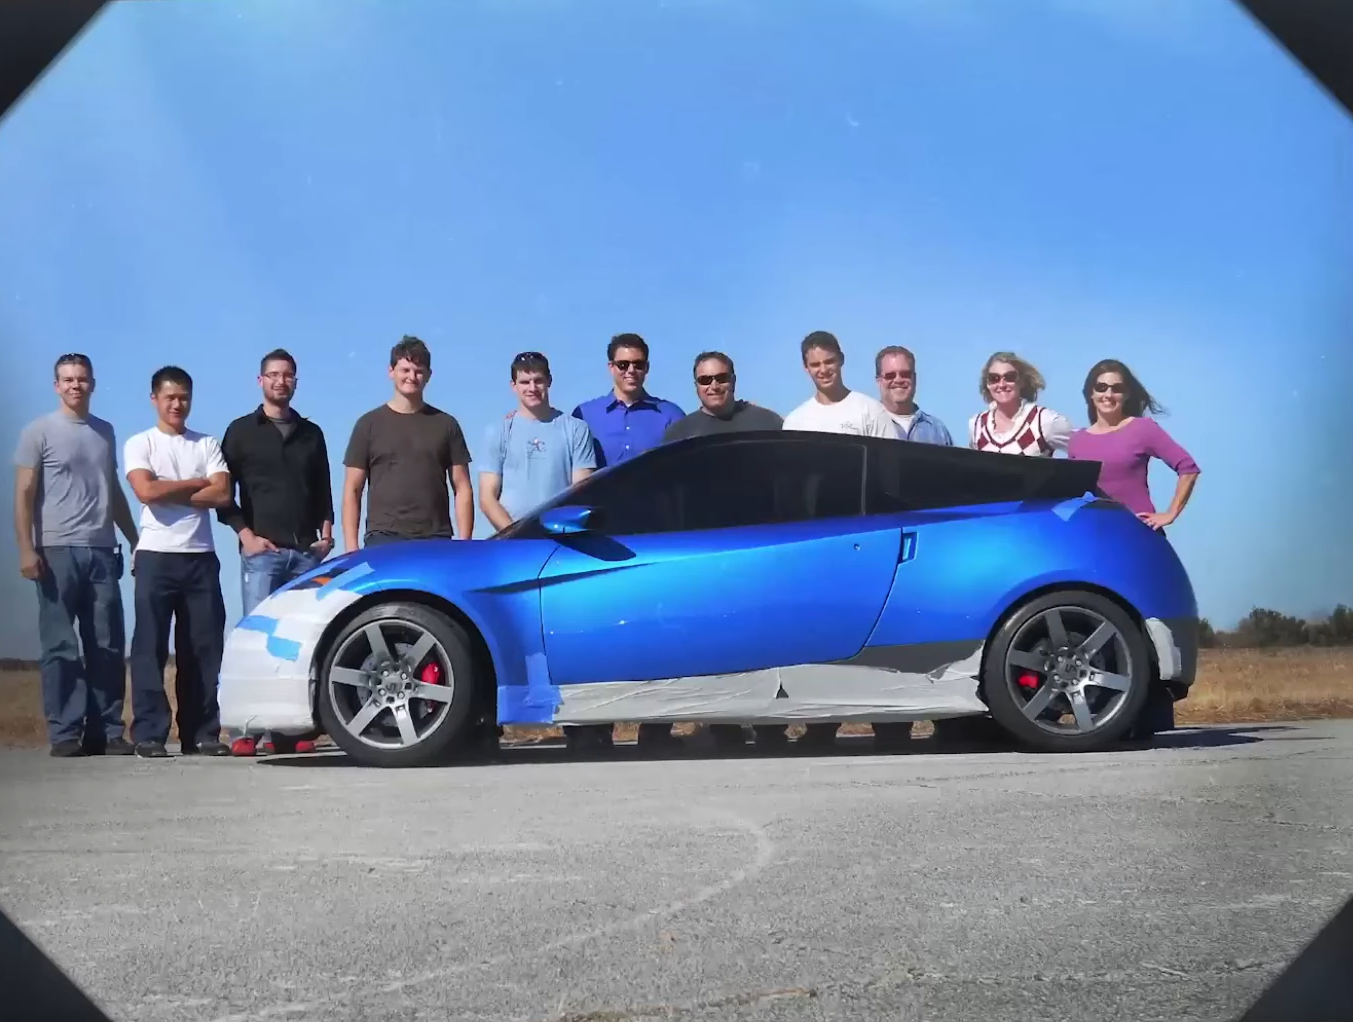 The blue Rivian sports car prototype, shot in profile with employees standing behind it